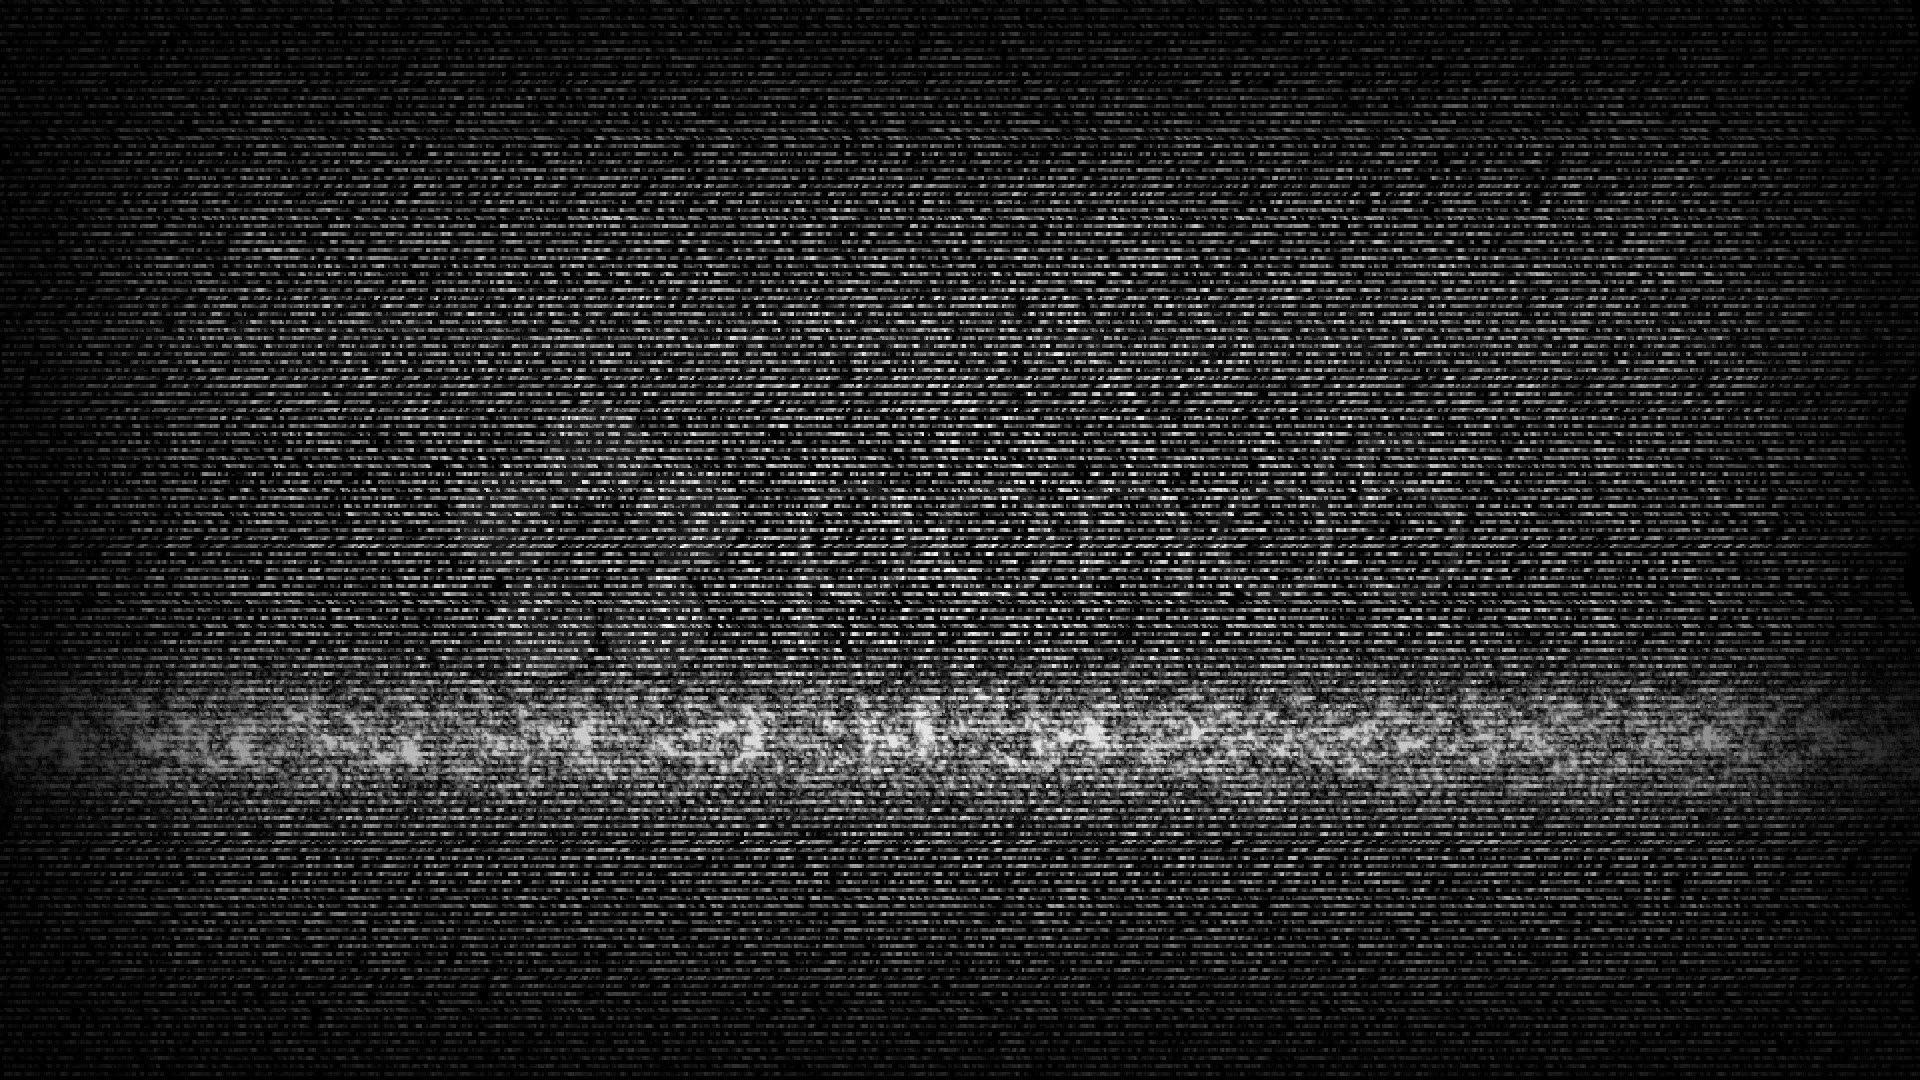 Stock Video: TV Static Noise HD ~ Buy Now #772279 | Pond5